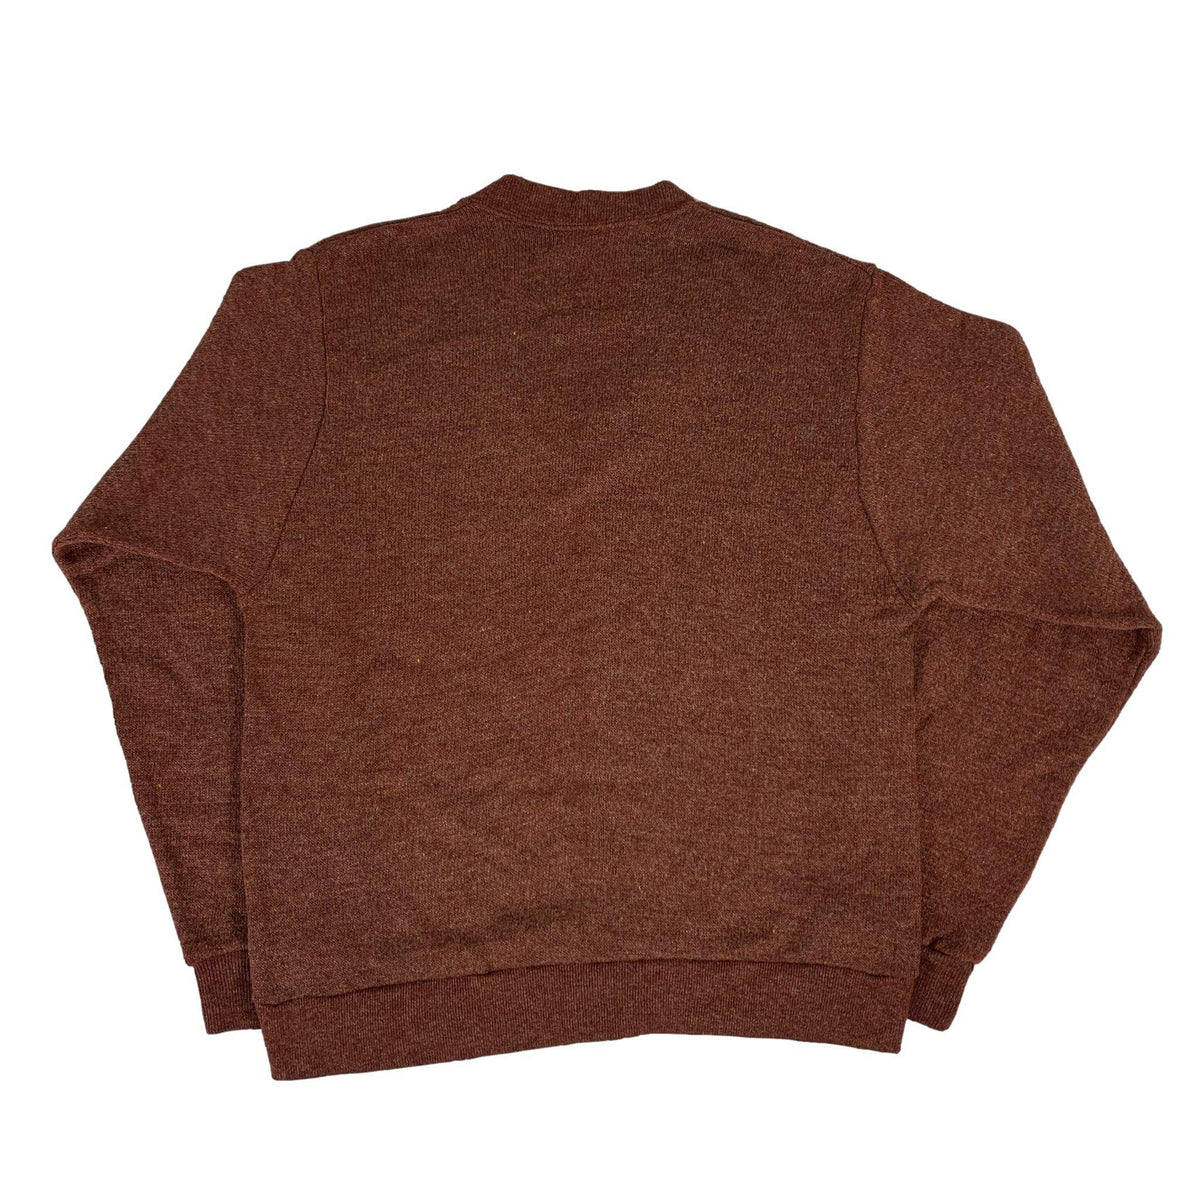 "Vintage Champion ""Doran Casual"" Knit Sweater"